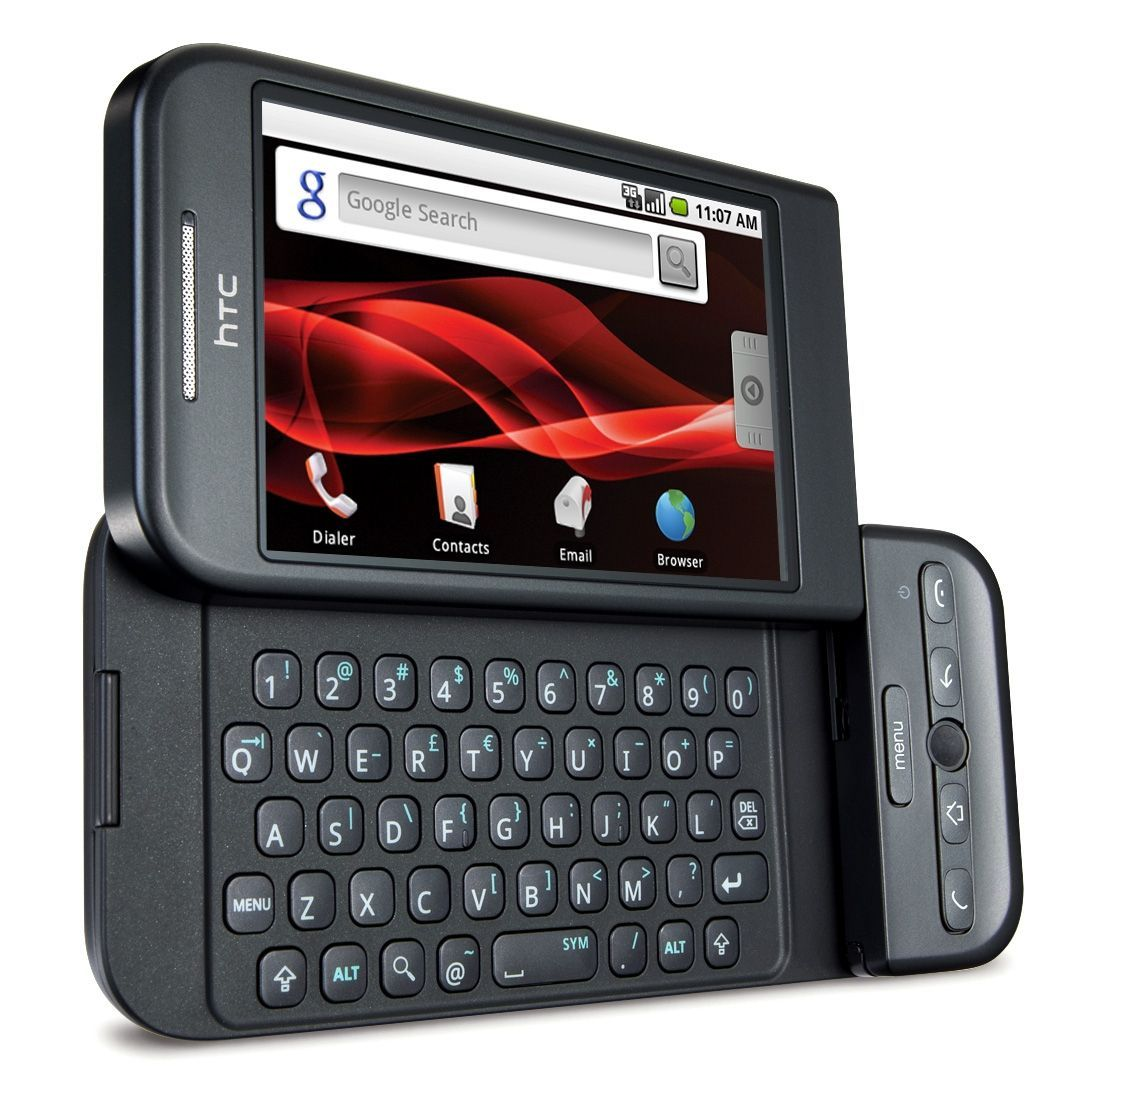 HTC manufactured a slideout QWERTY keyboard touchscreen